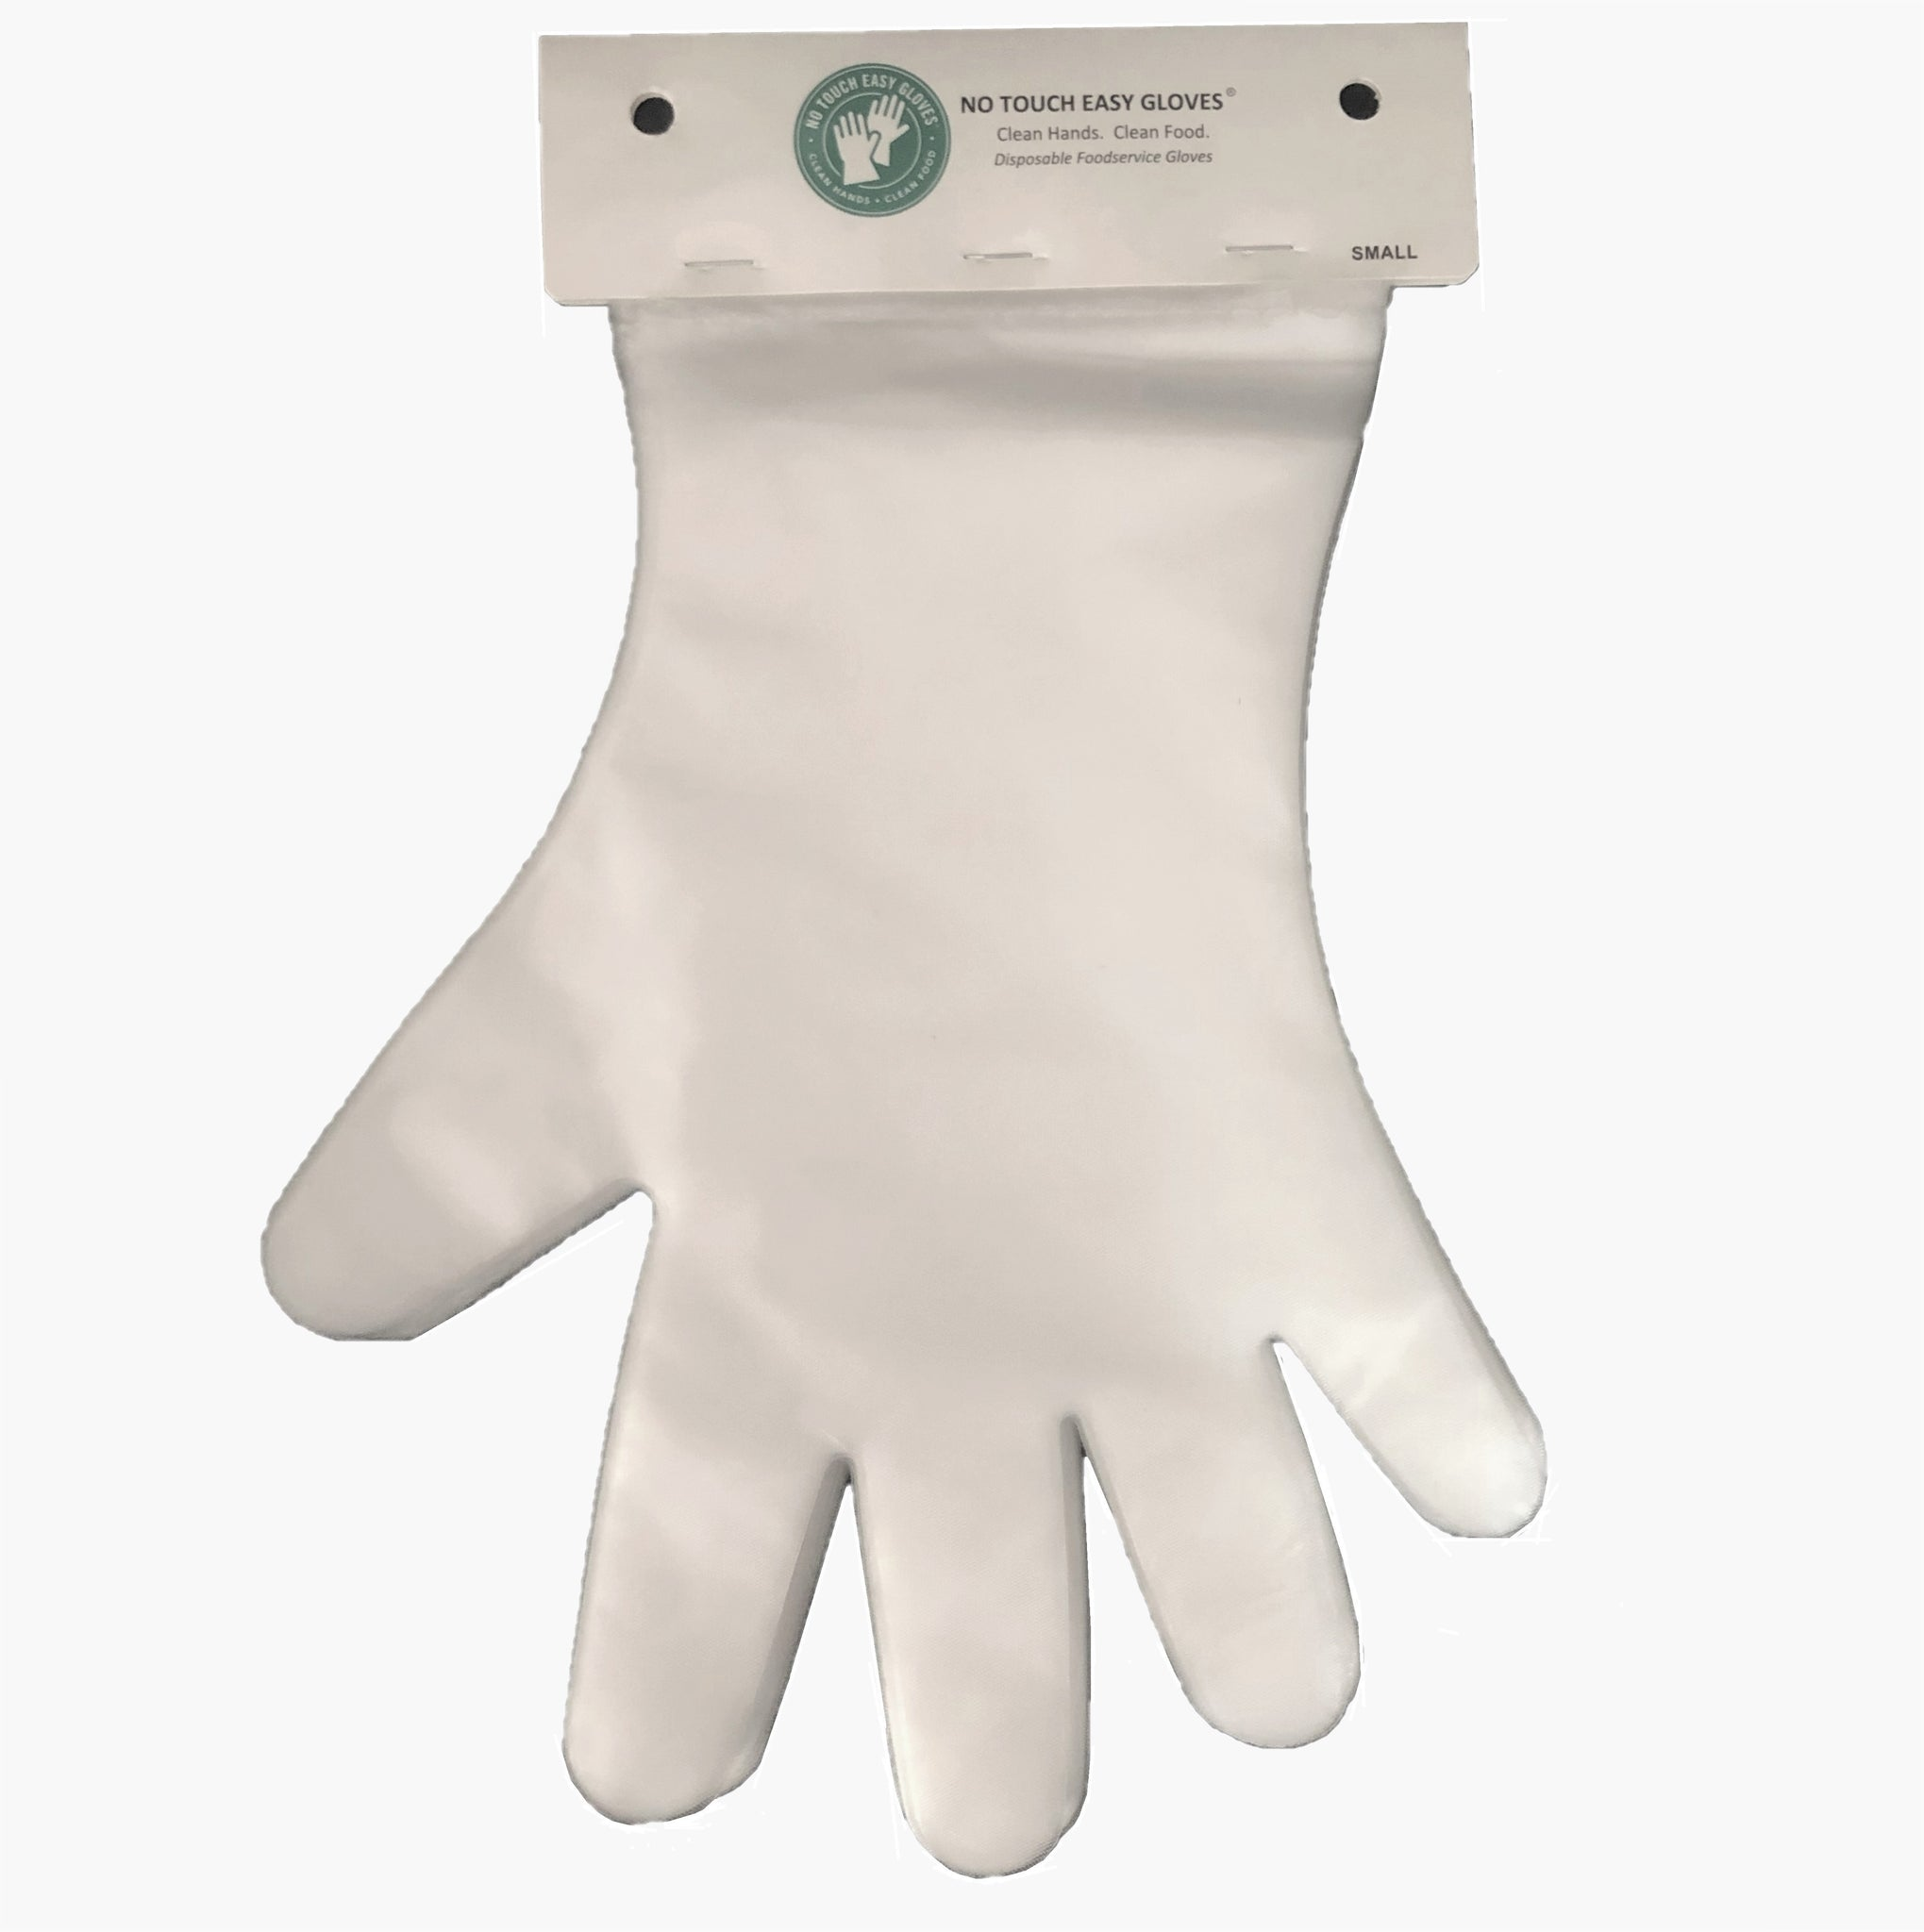 CPE Gloves - Box of 20 Packs (1000 gloves)